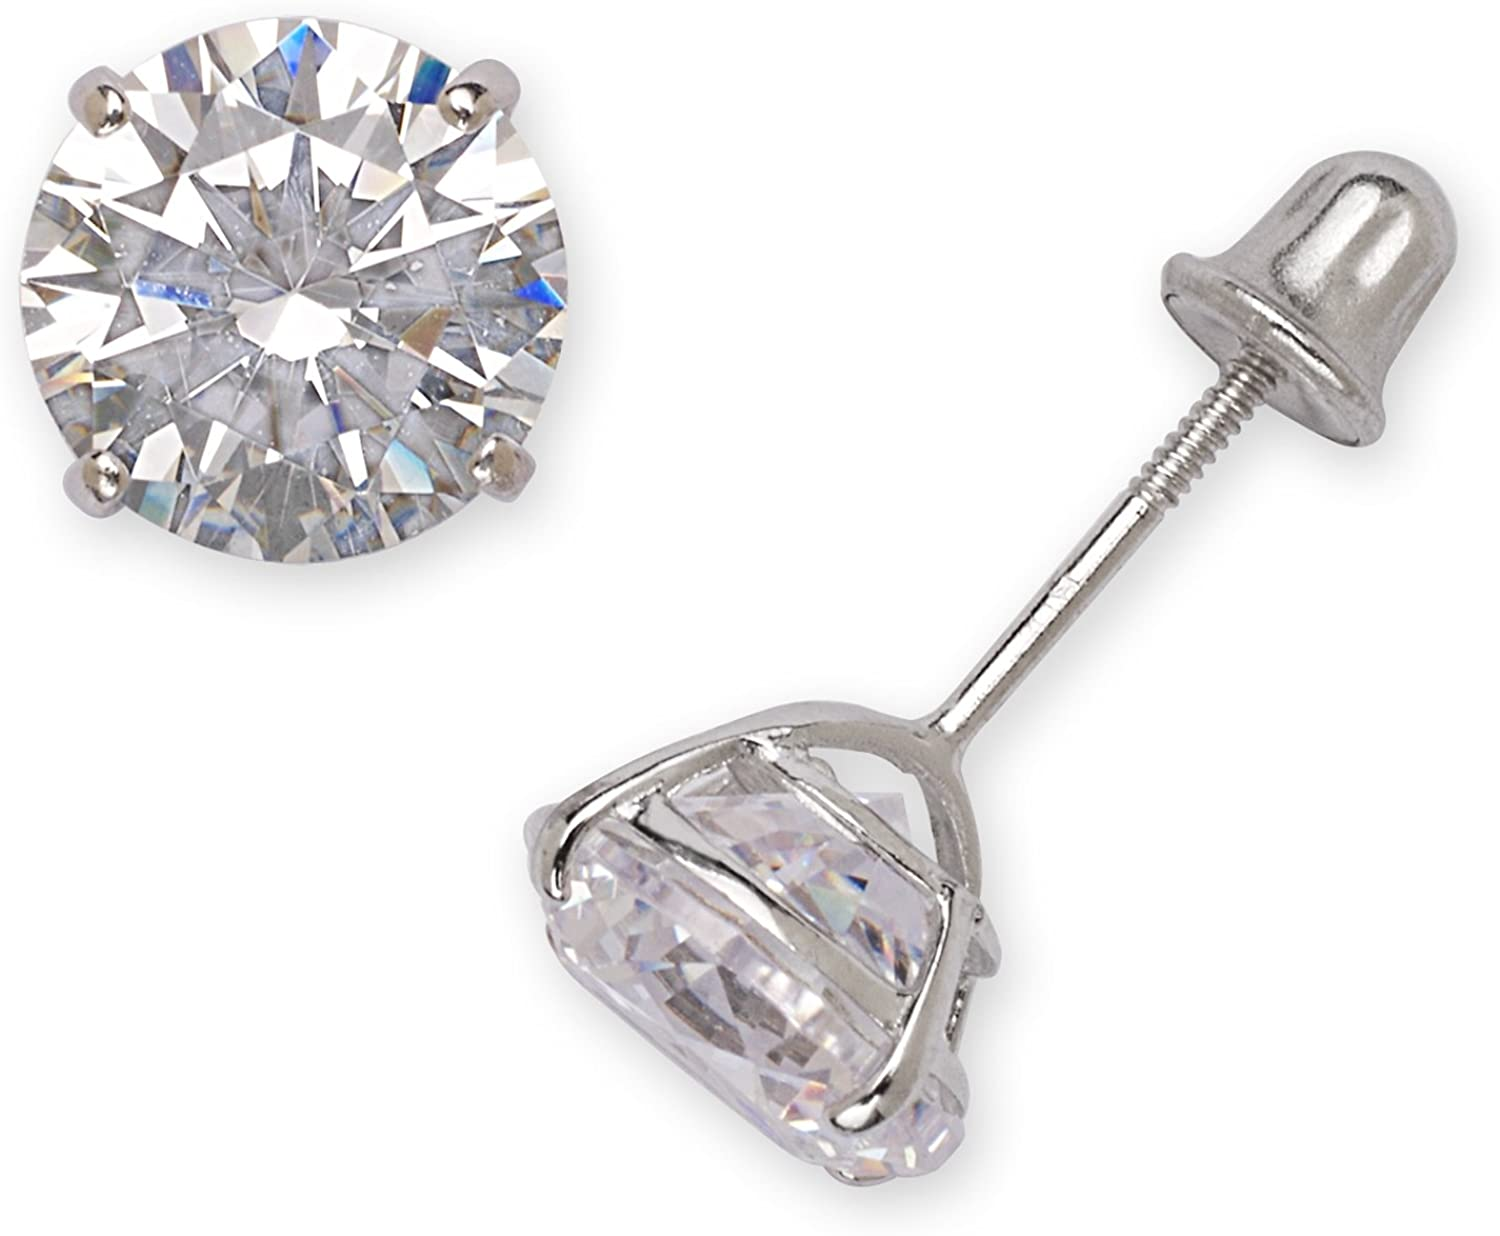 6mm-8mm Jewelryweb 14k Yellow or White Gold Solitaire Round Cubic Zirconia CZ Dangling Drop Lever-back Earrings